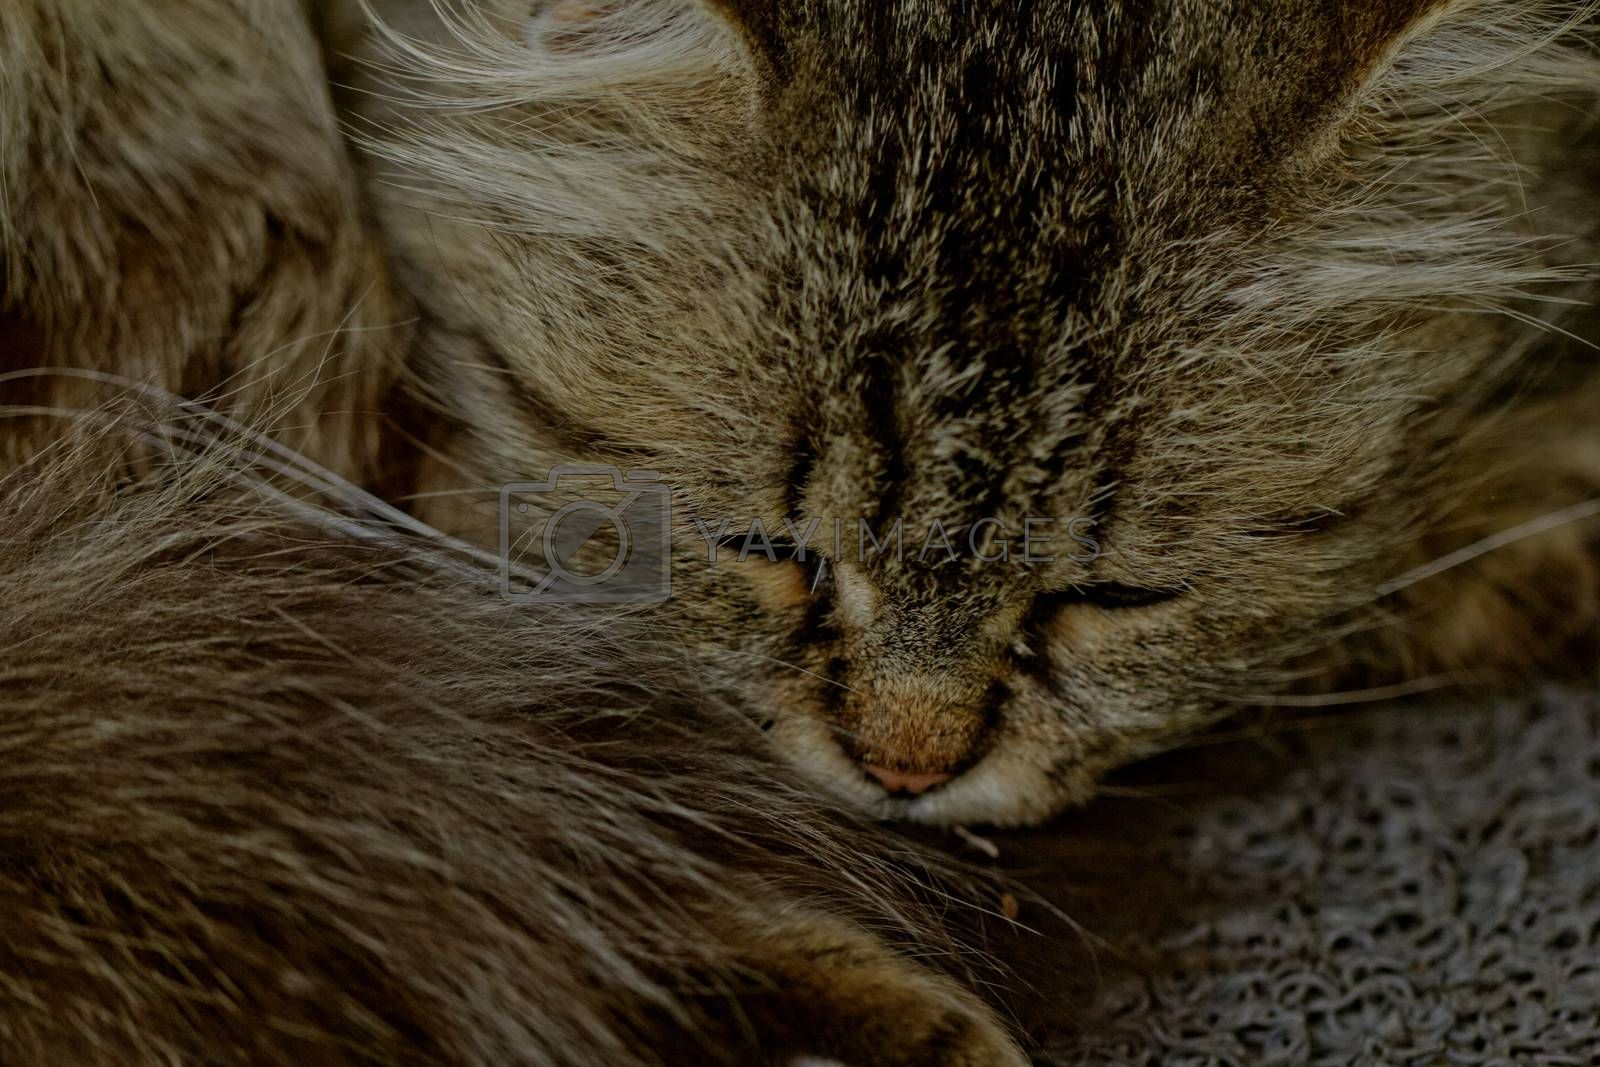 portrait about a sleeping cat